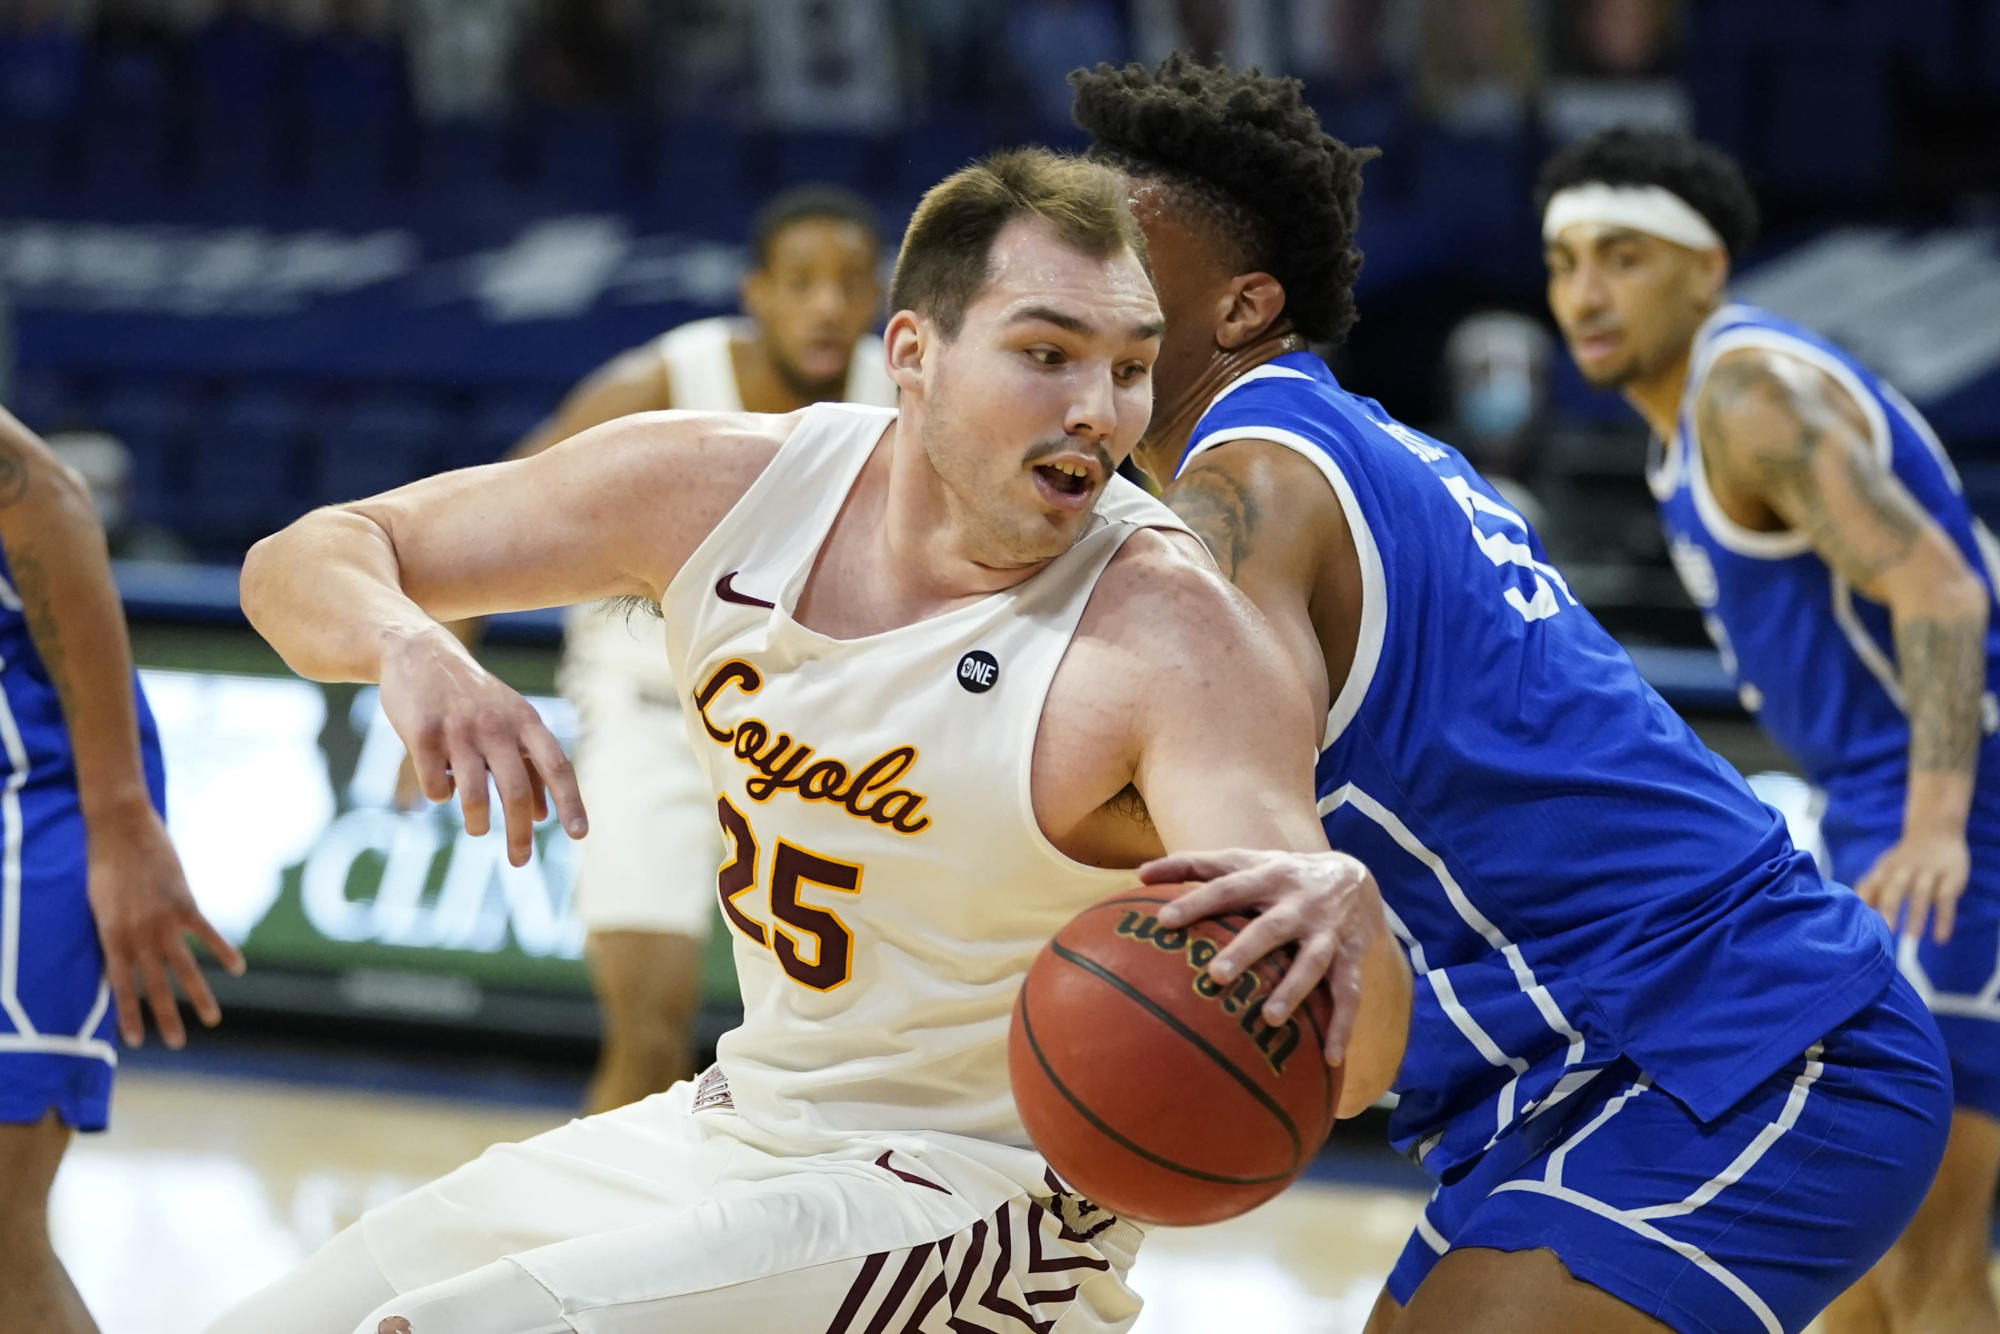 loyola-chicago's-krutwig-says-he-is-turning-pro